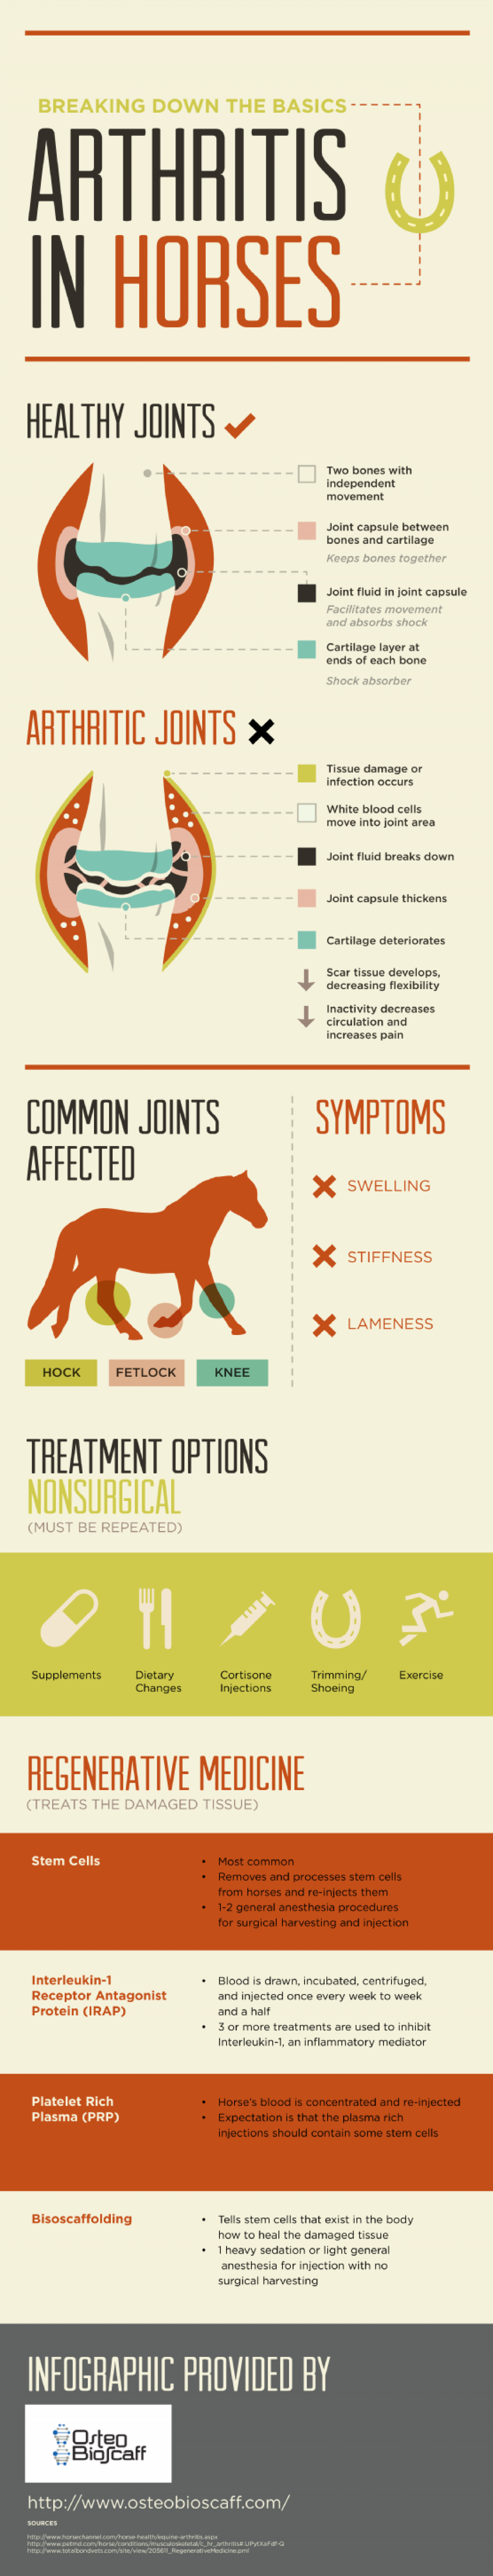 Breaking Down the Basics: Arthritis in Horses Infographic